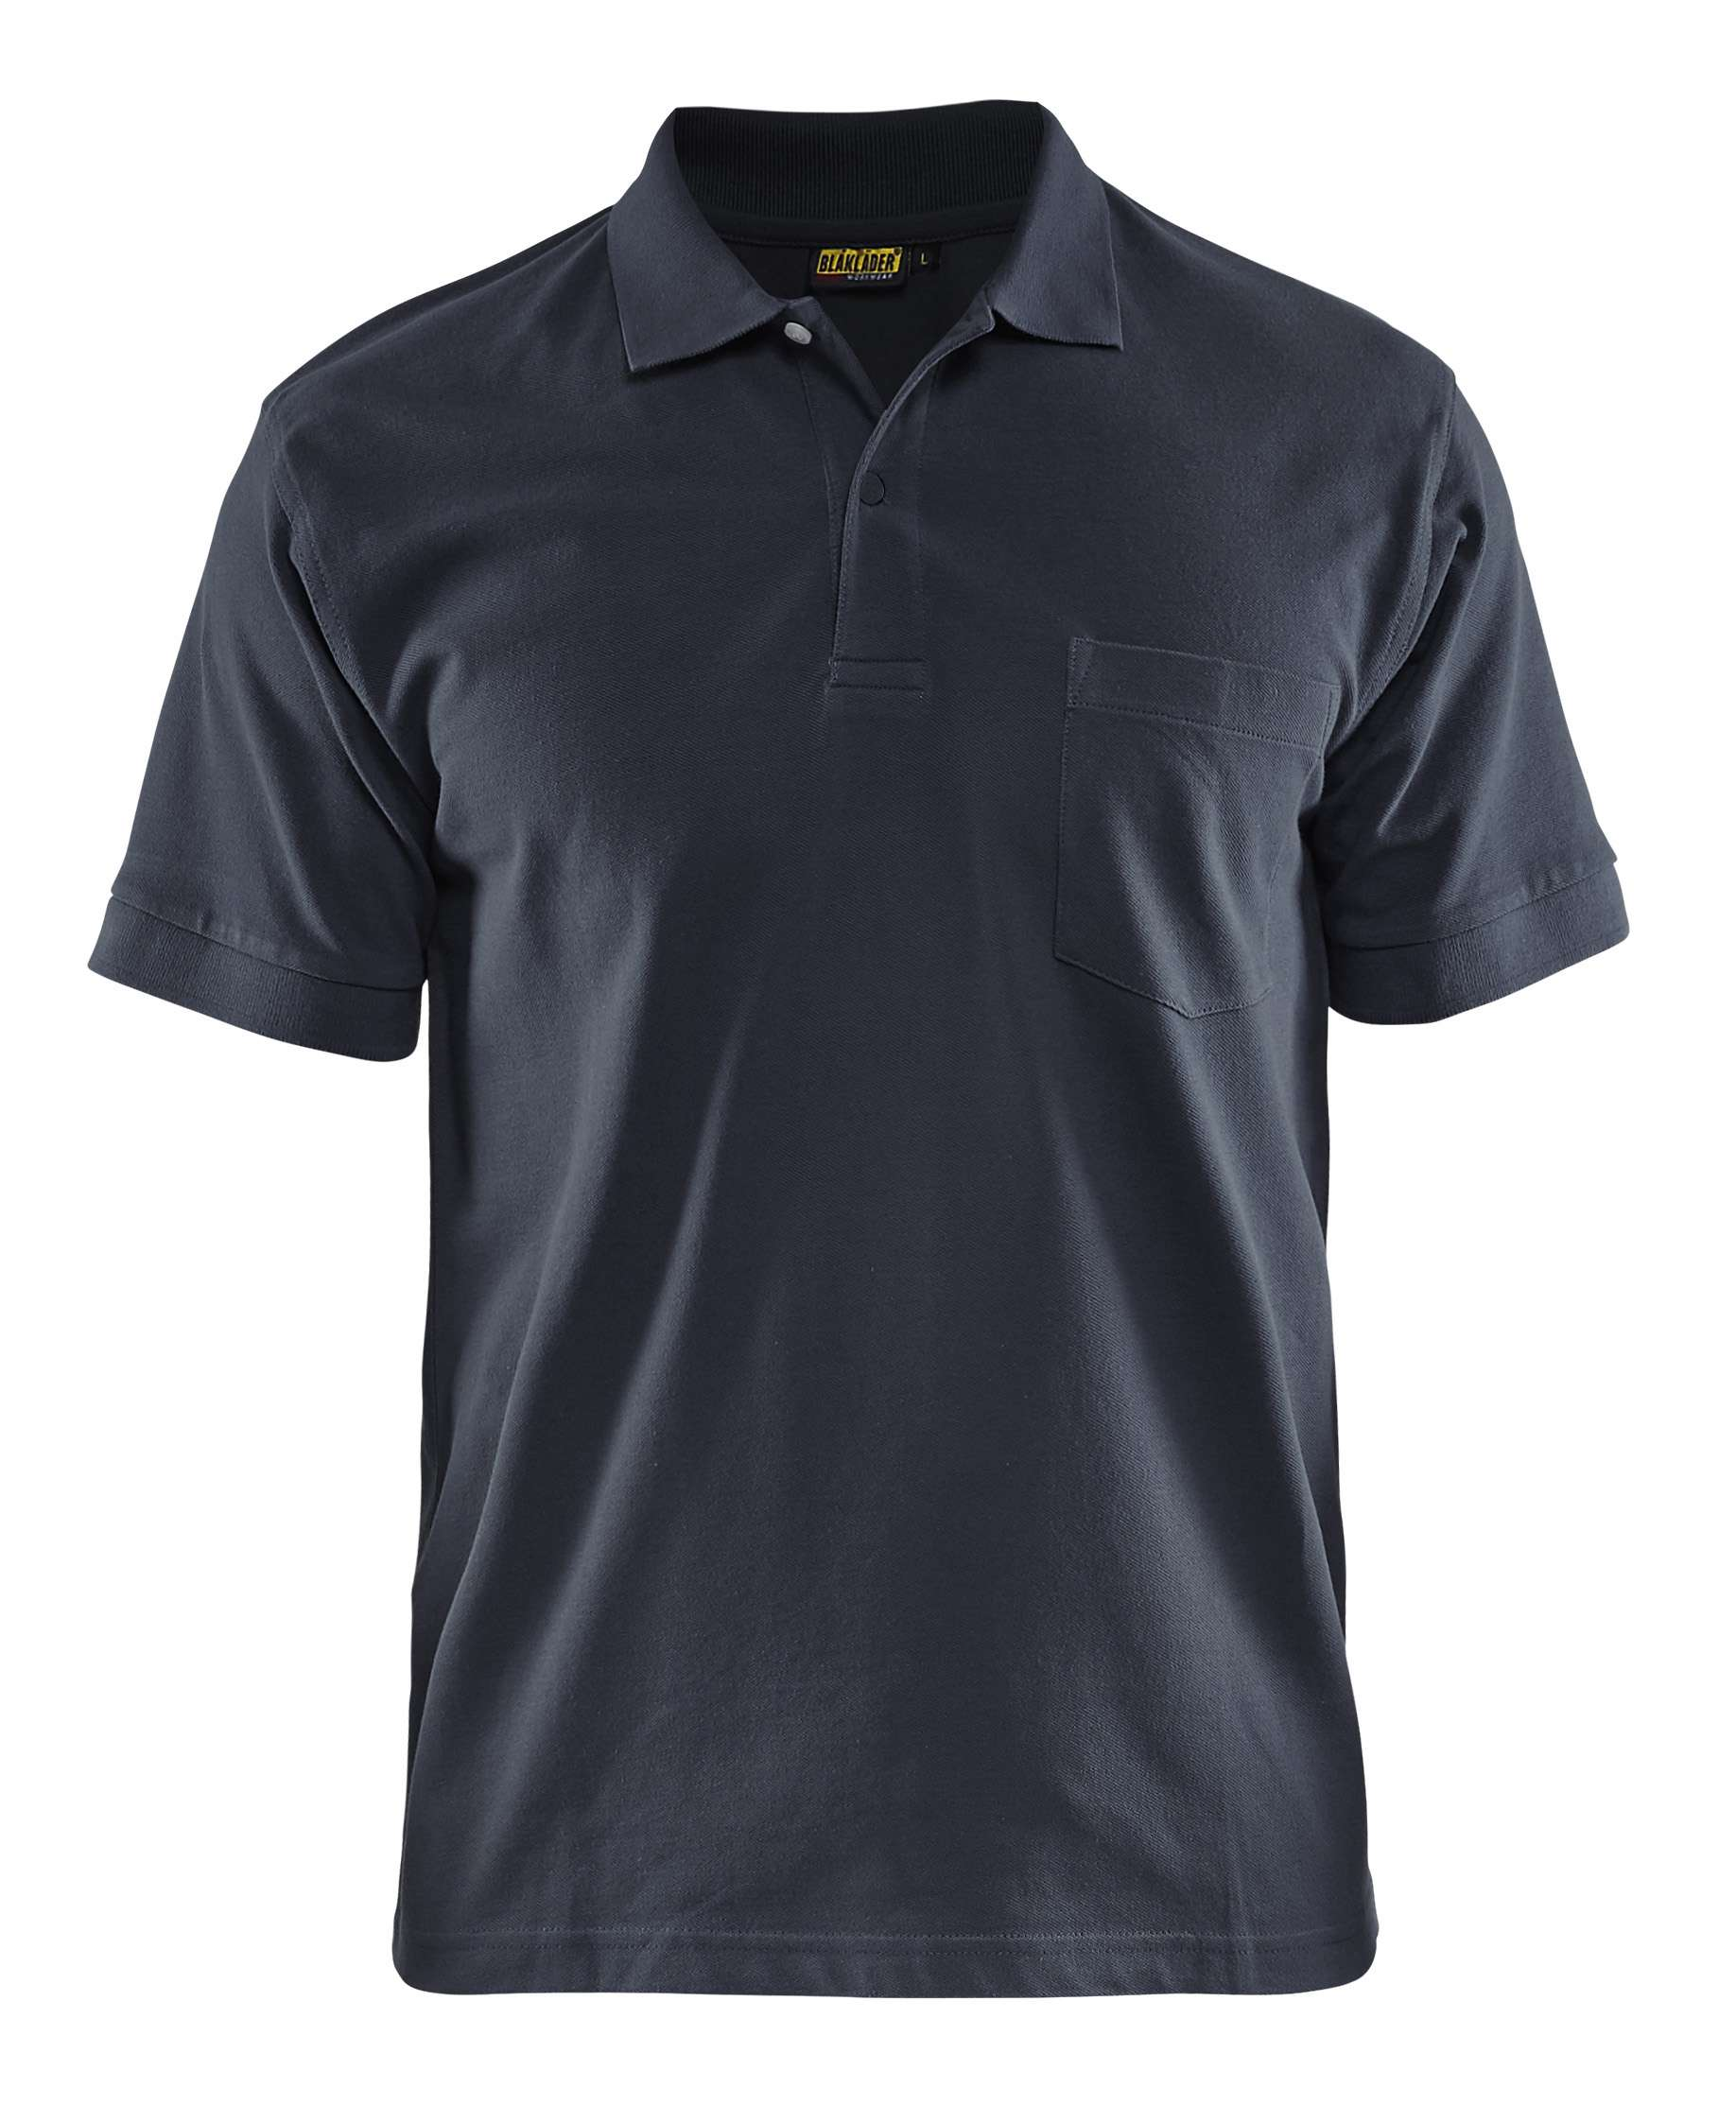 Blaklader Polo shirts 33051035 marineblauw(8600)